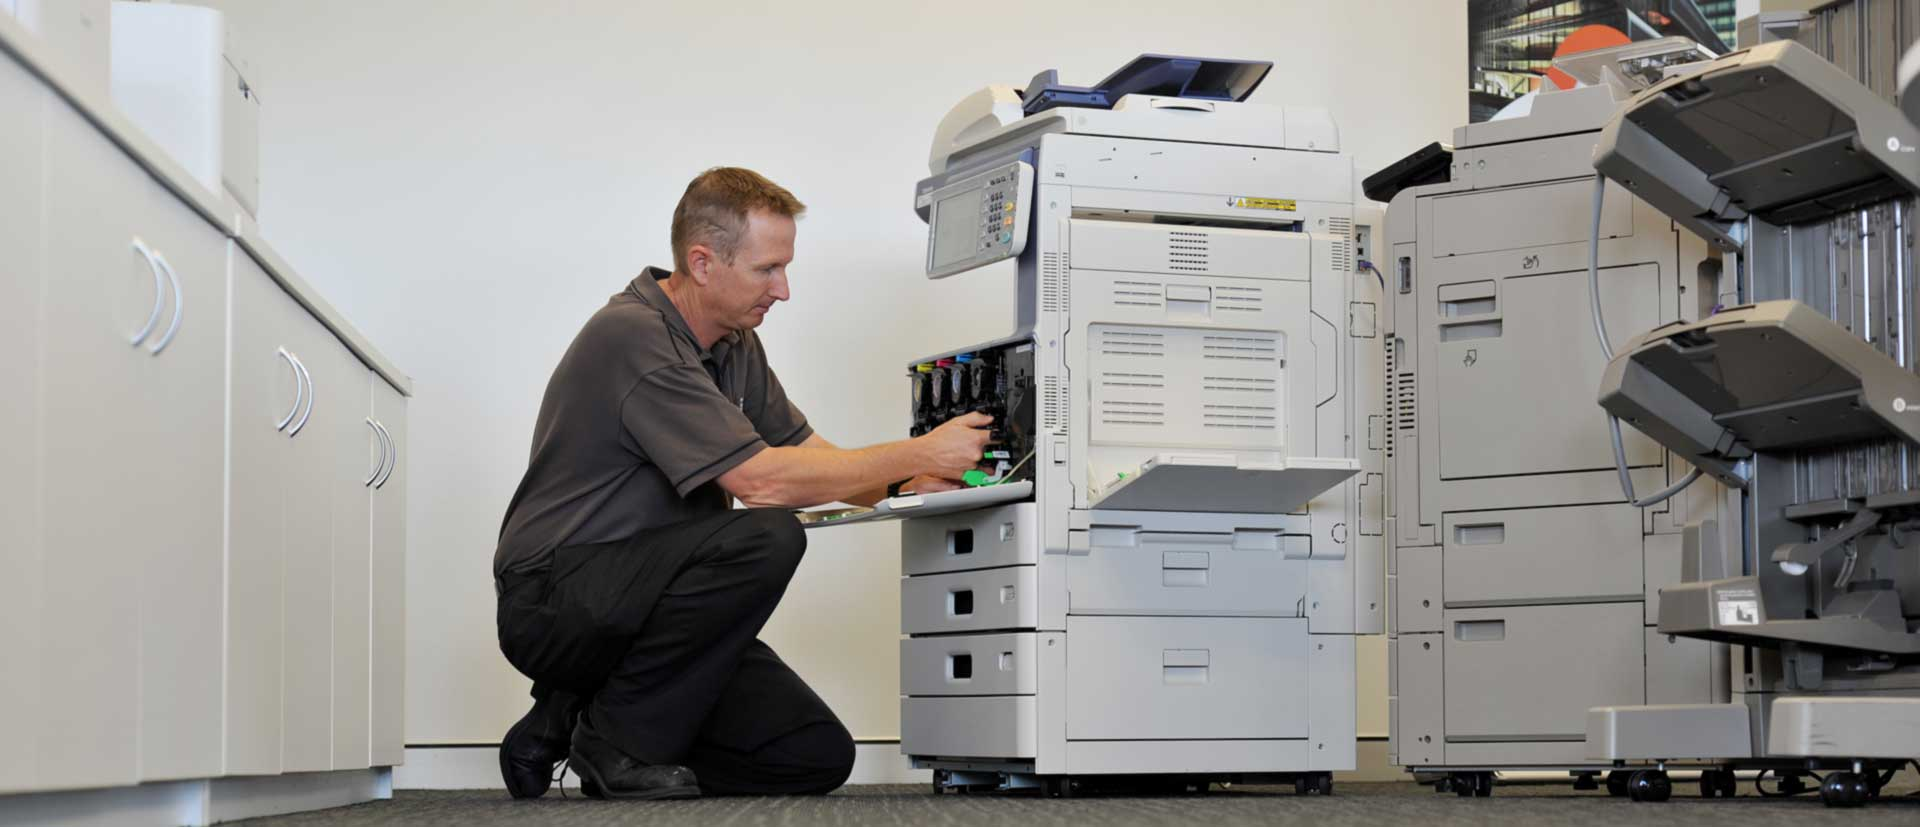 The many benefits of managed print